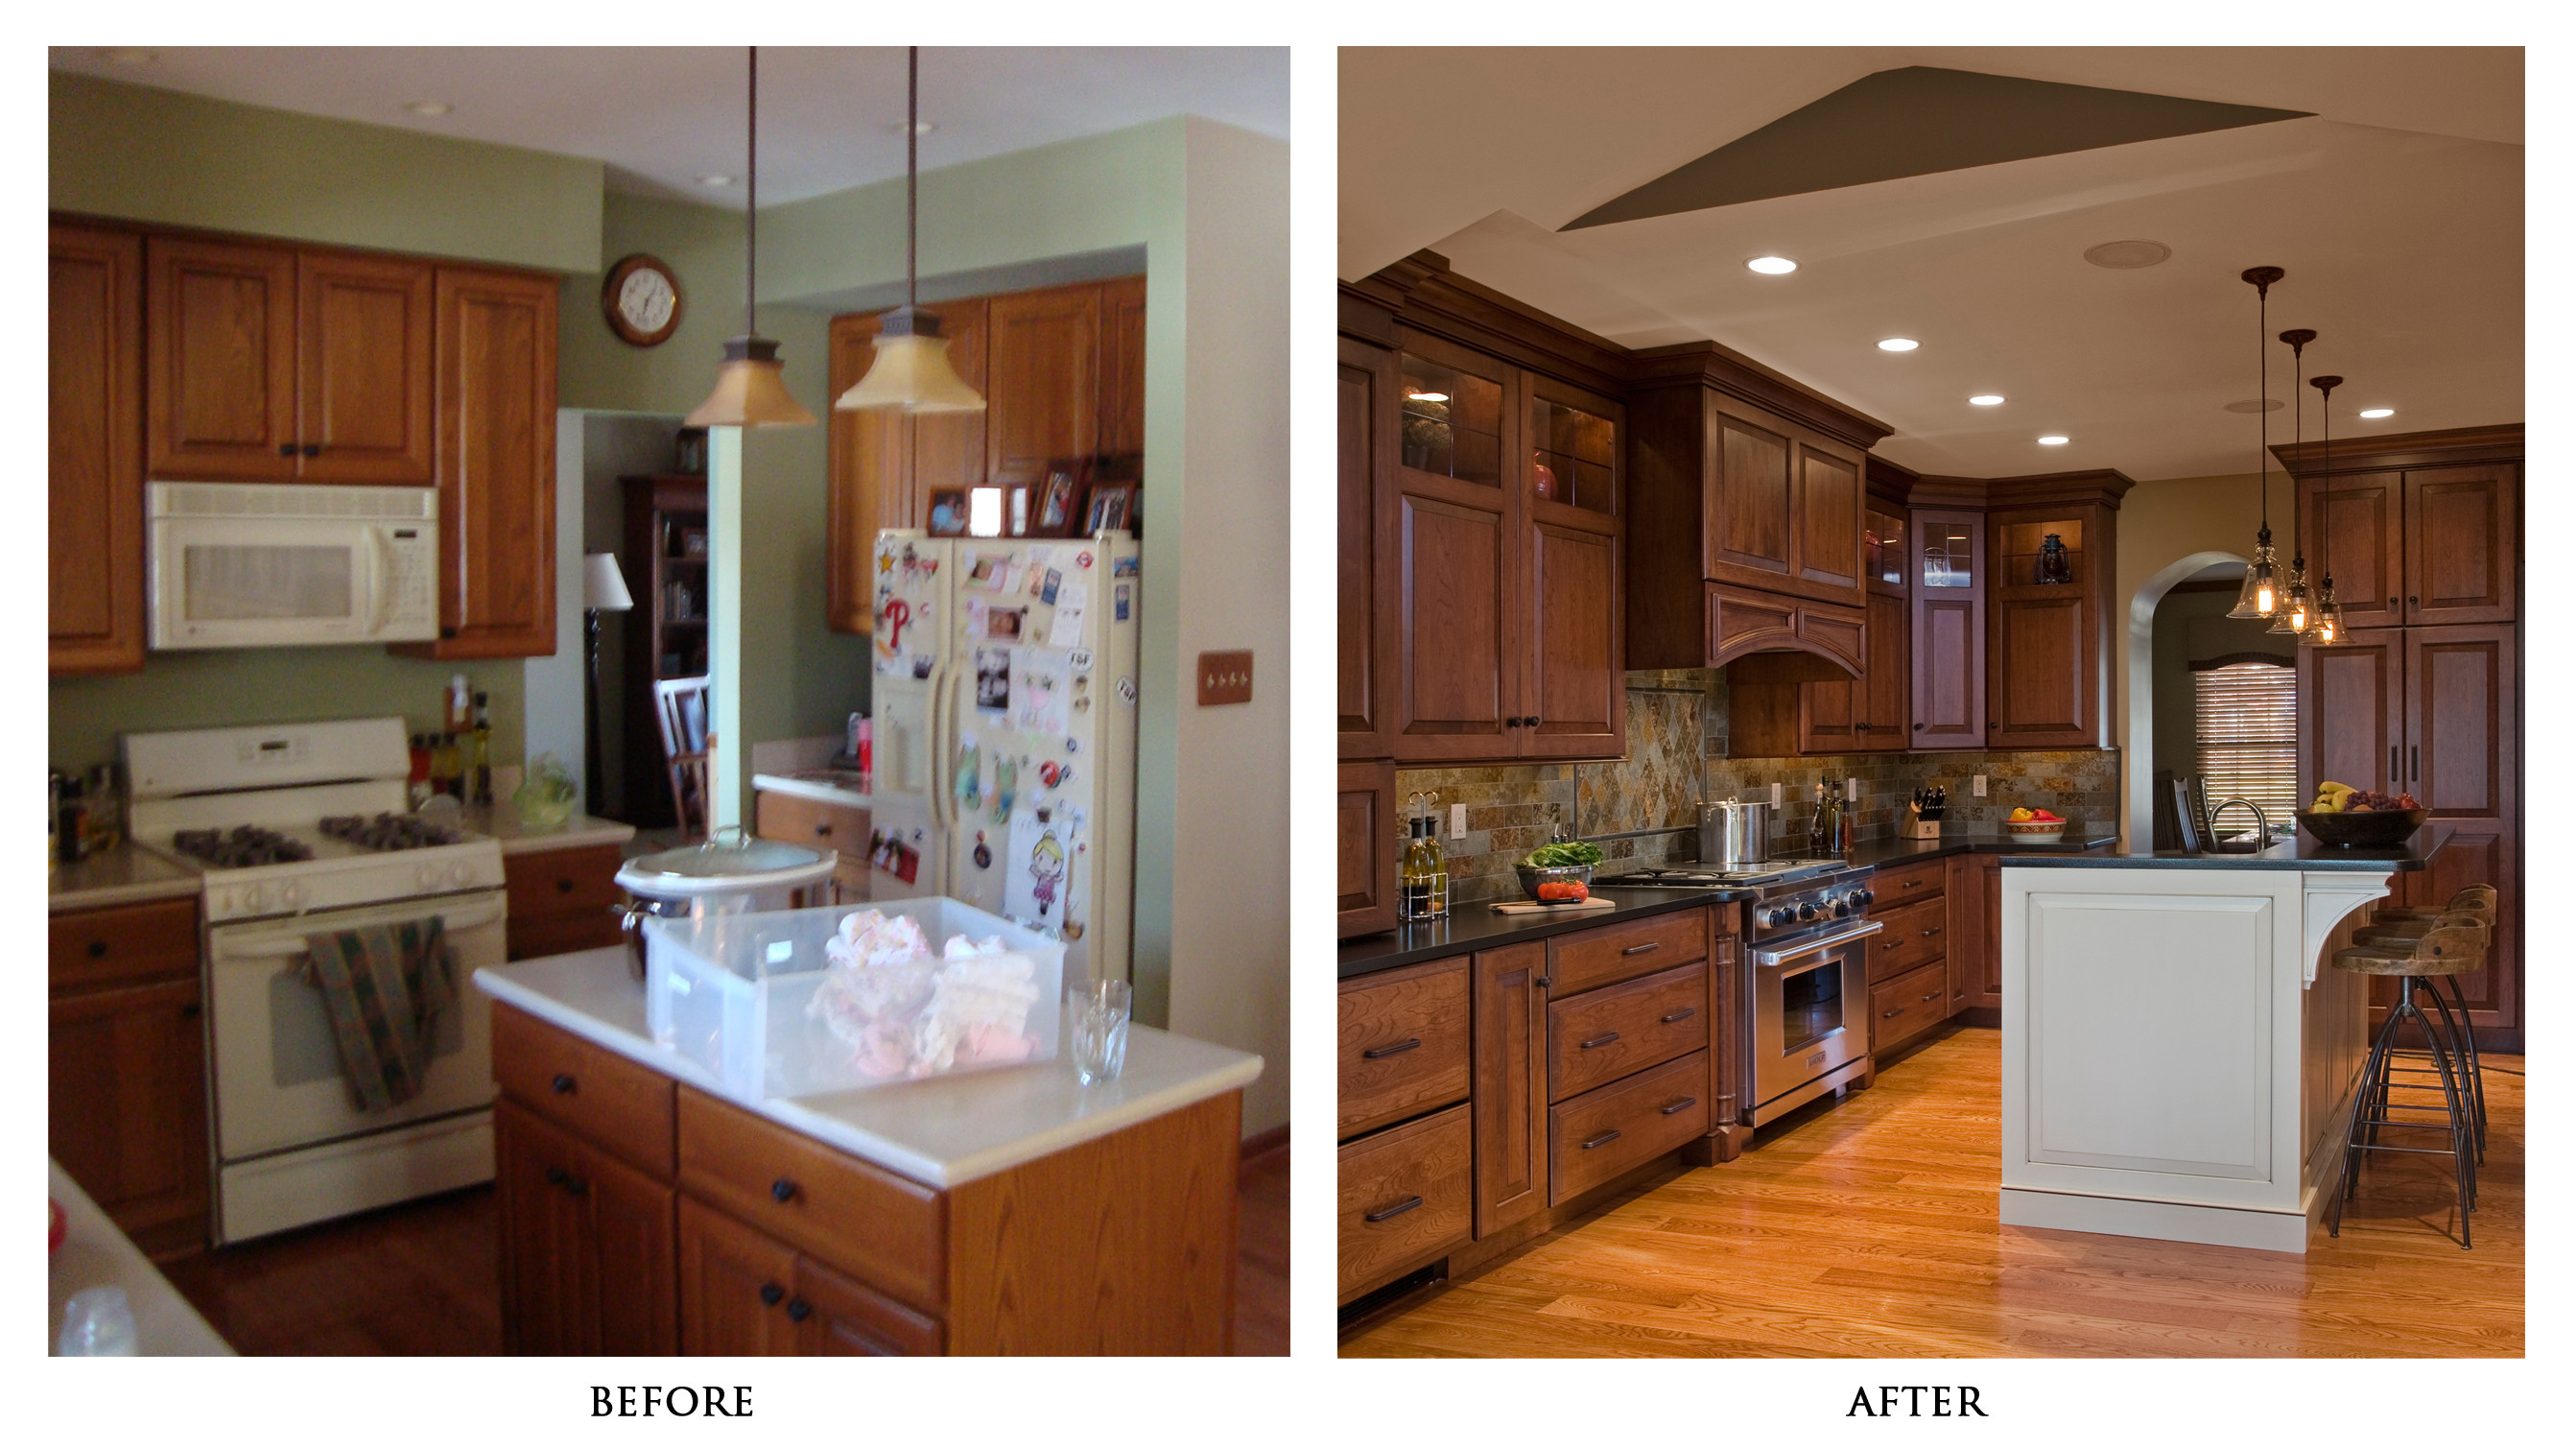 kitchen remodels before and after home depot garbage cans national cash offer we buy ugly homes transformation with